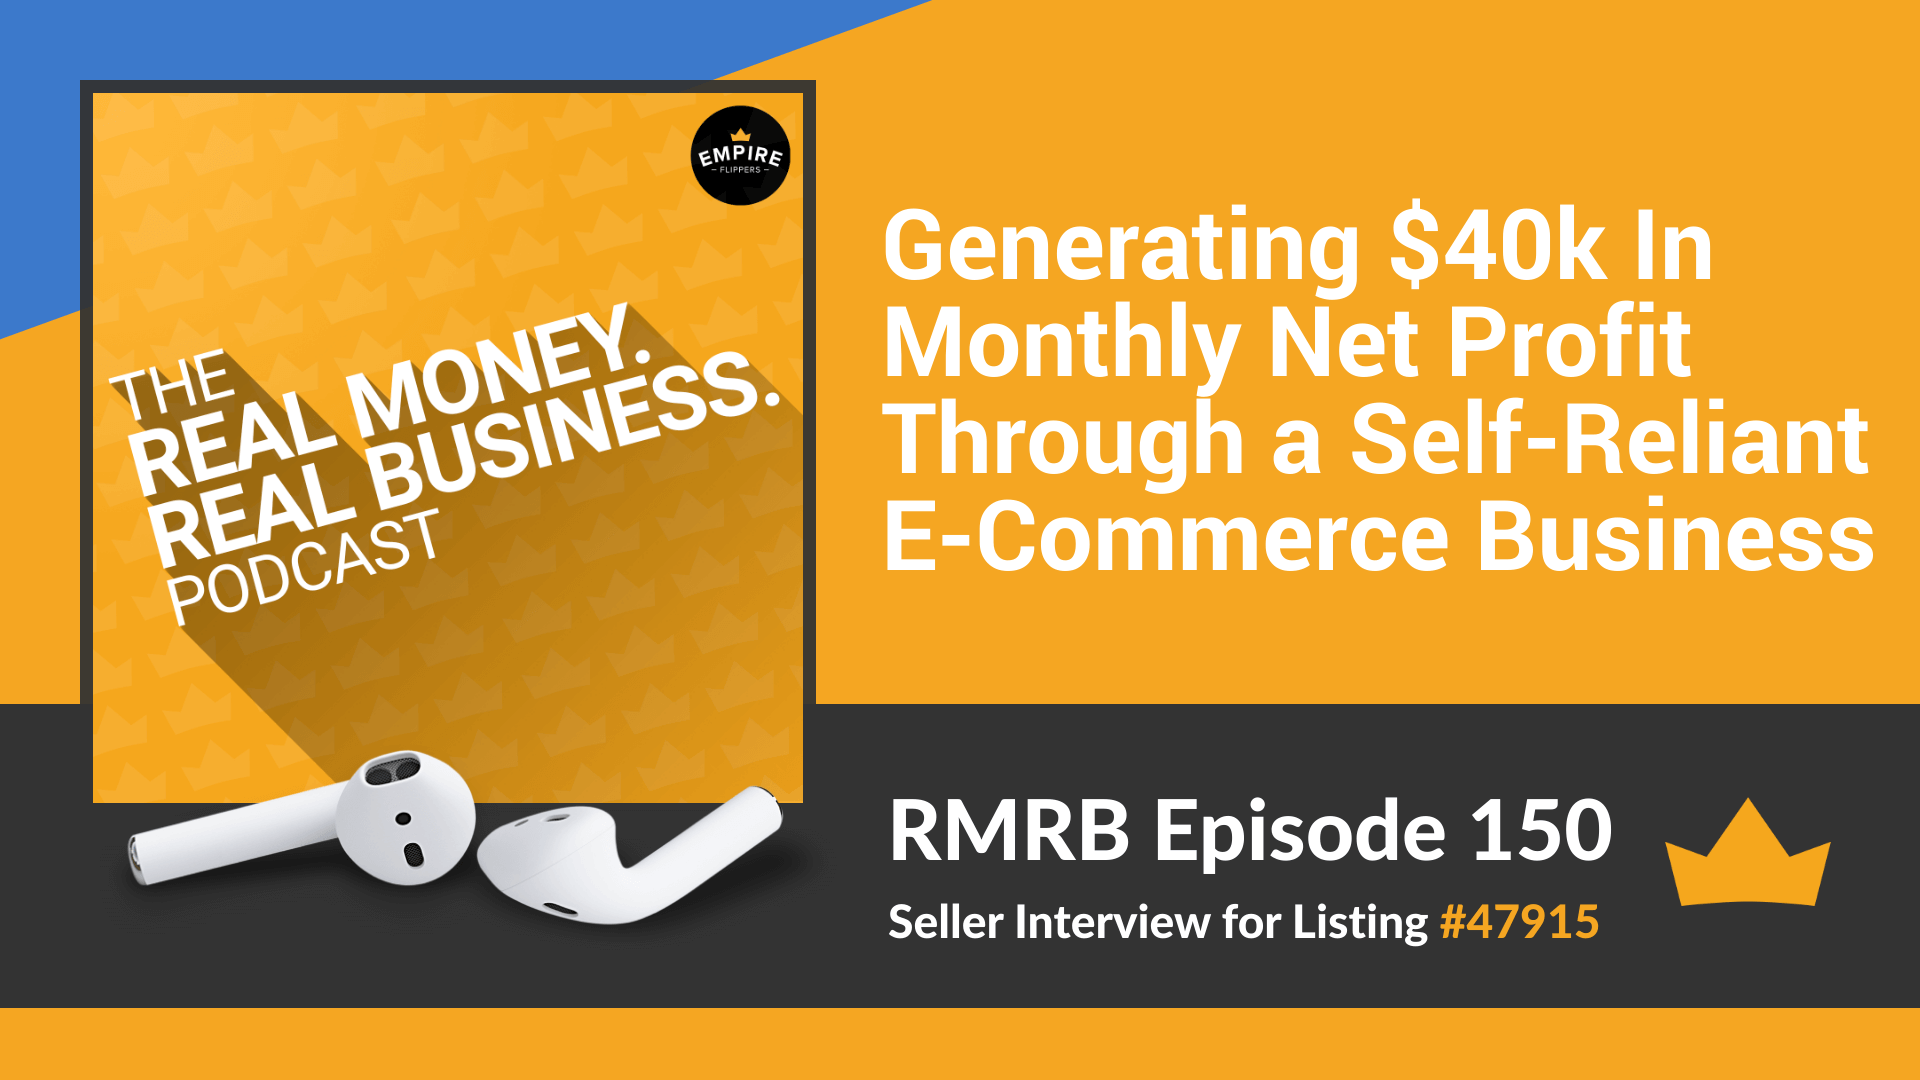 RMRB 150 - Generating $40k In Monthly Net Profit Through a Self-Reliant E-Commerce Business